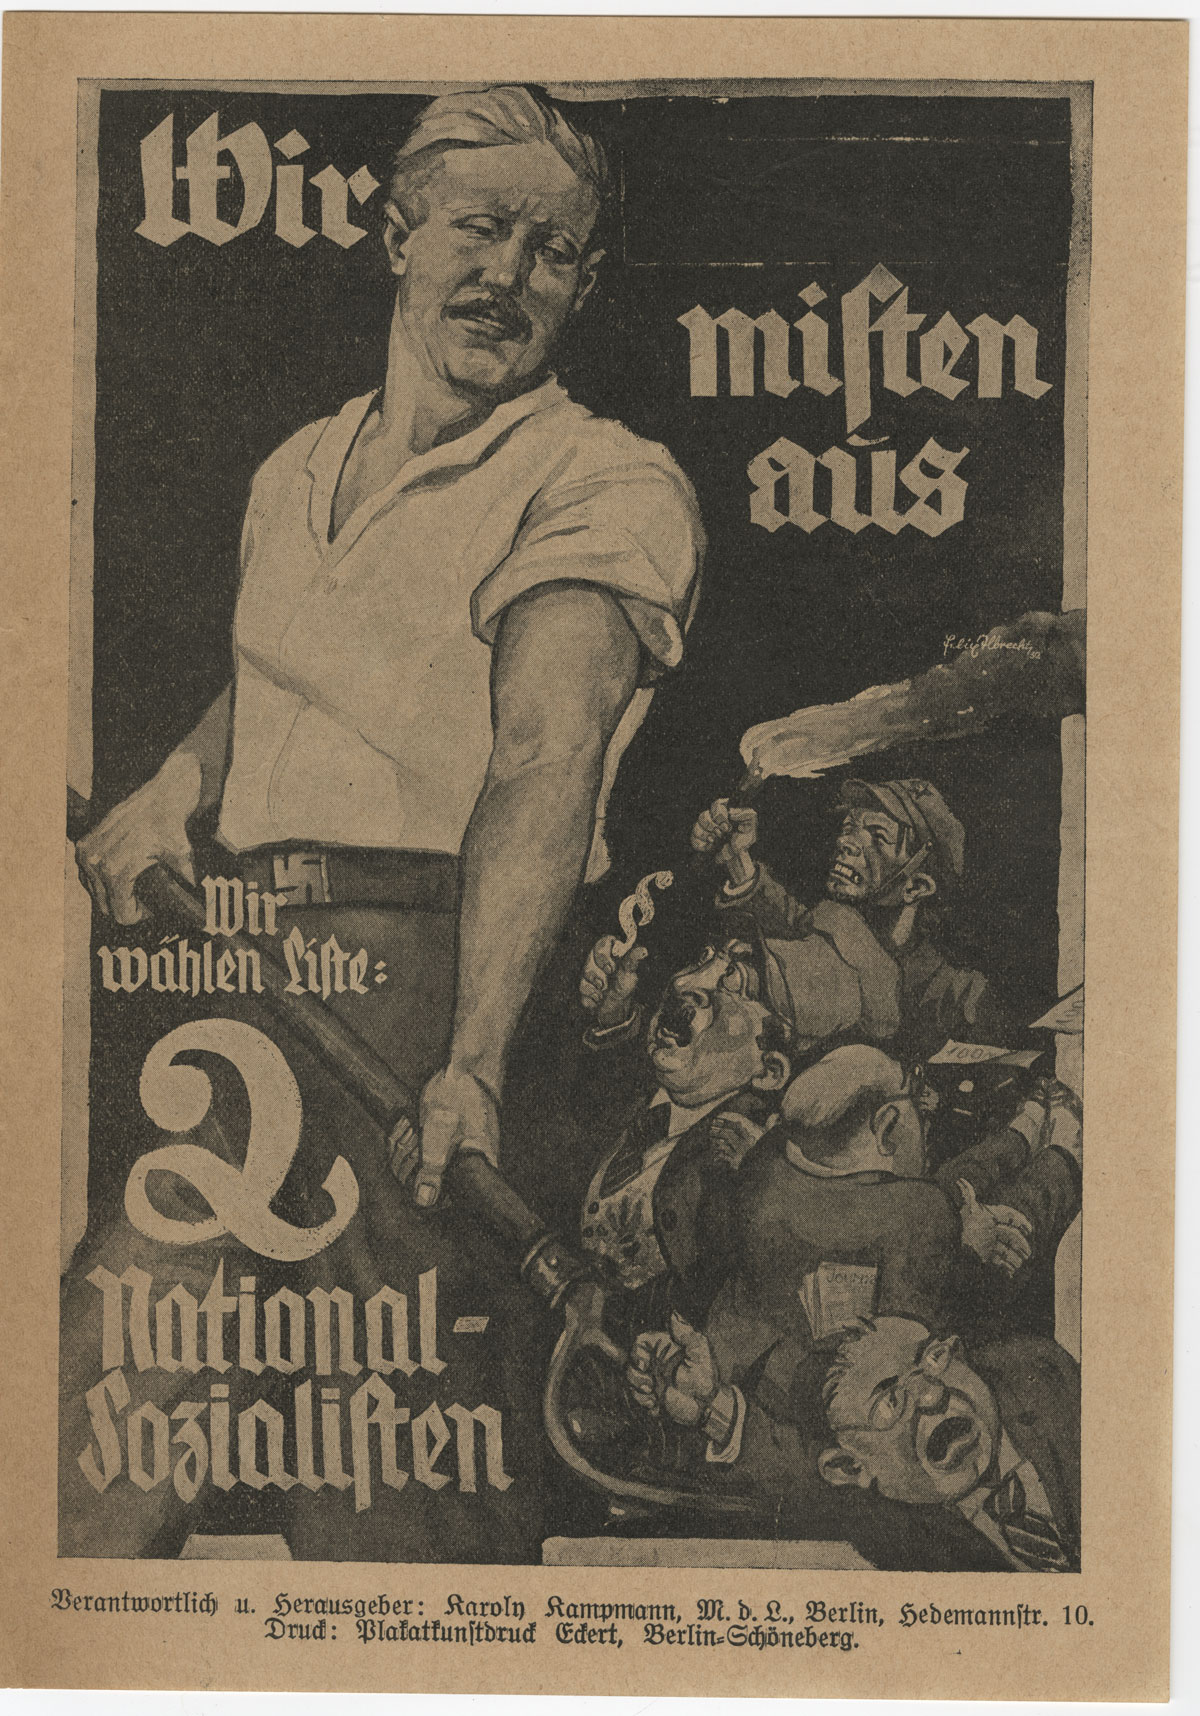 """Nazi Broadside from the 1932 German elections ephemera collection. It reads, """"We're cleaning the stable [manure]."""" 23x16 cm."""